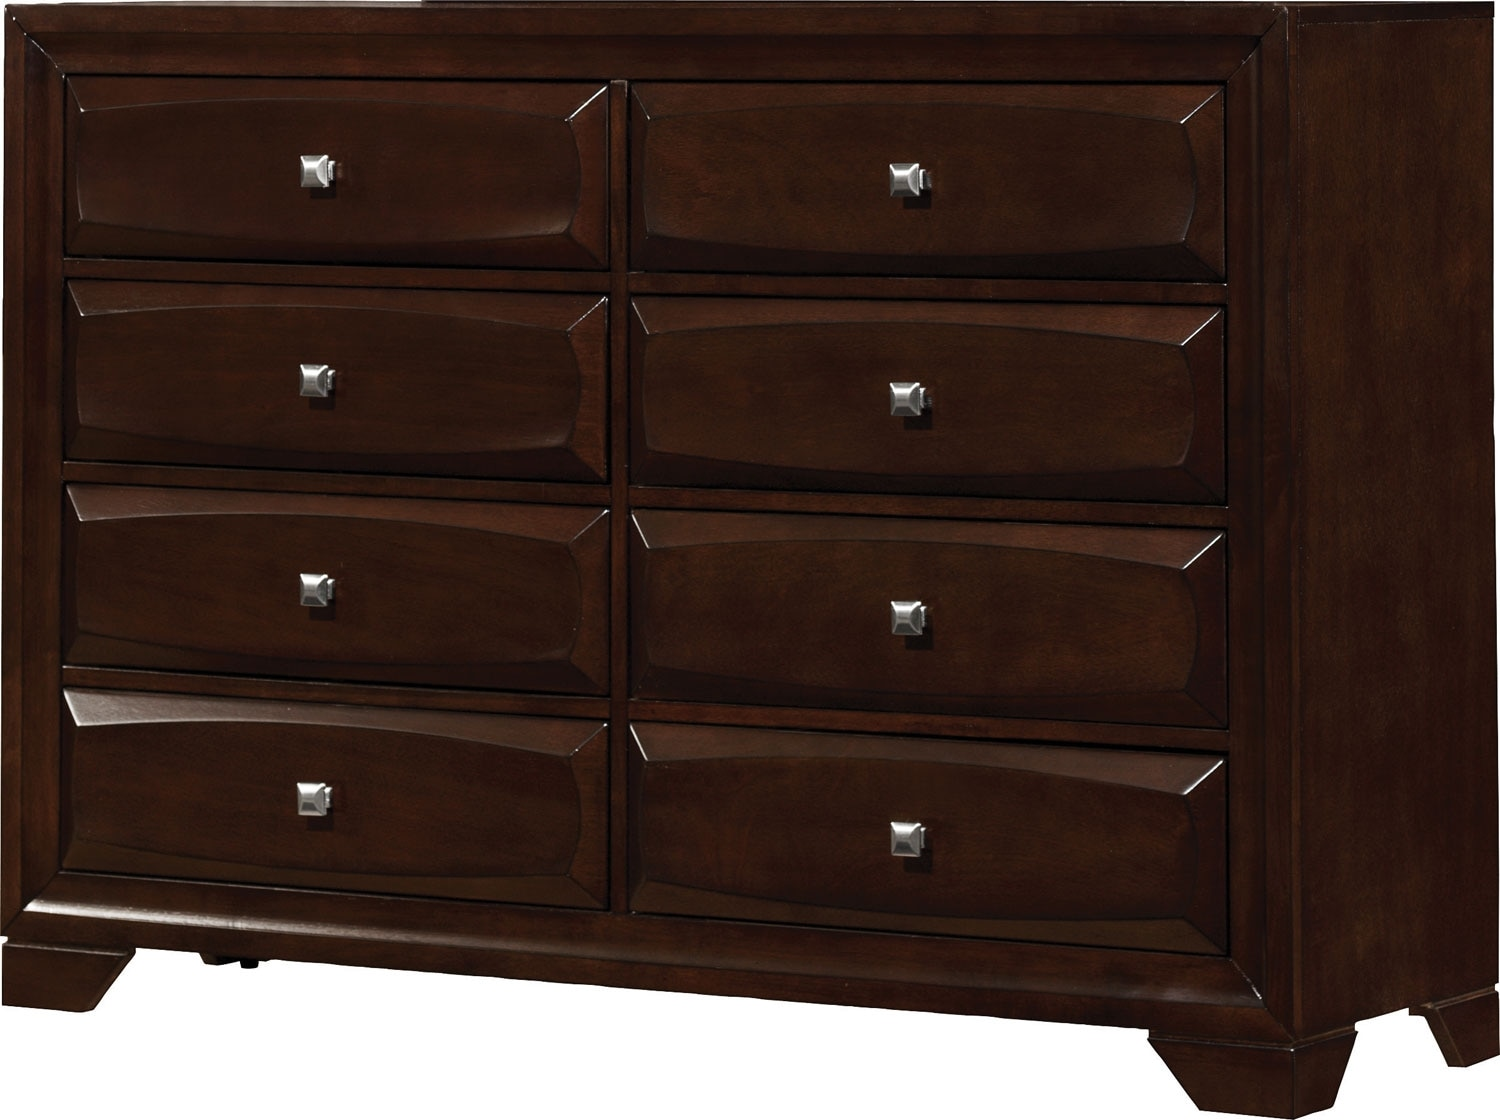 Jaxon Dresser United Furniture Warehouse